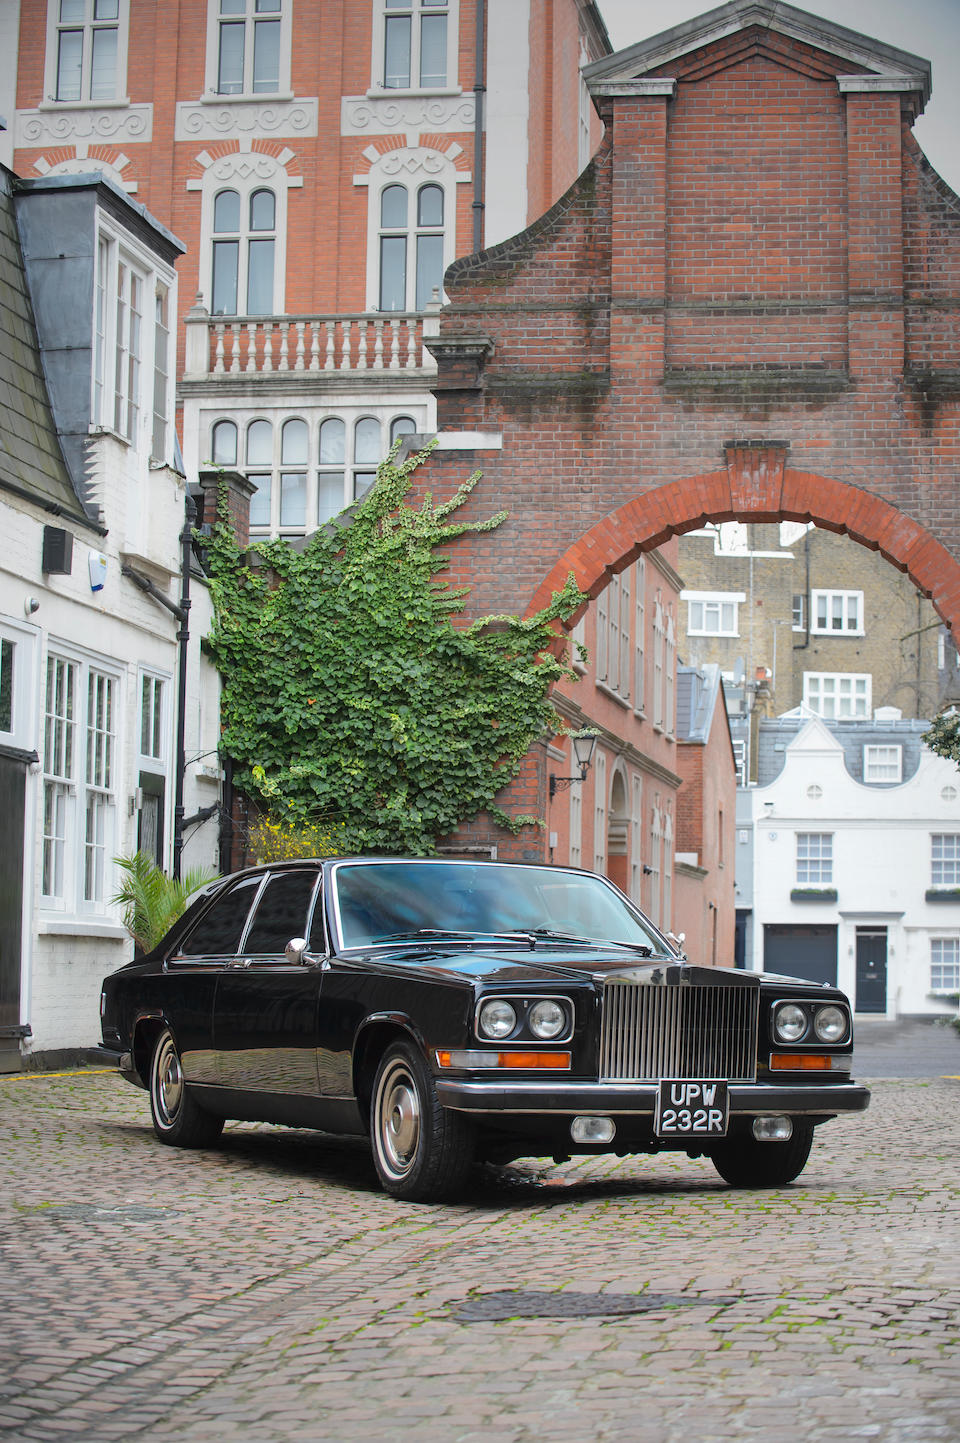 <I>Ex-Sammy Davis Jr.</I> <b>1977 Rolls Royce Camargue</b><br />Chassis no. JRF30980<br />Engine no. 30980